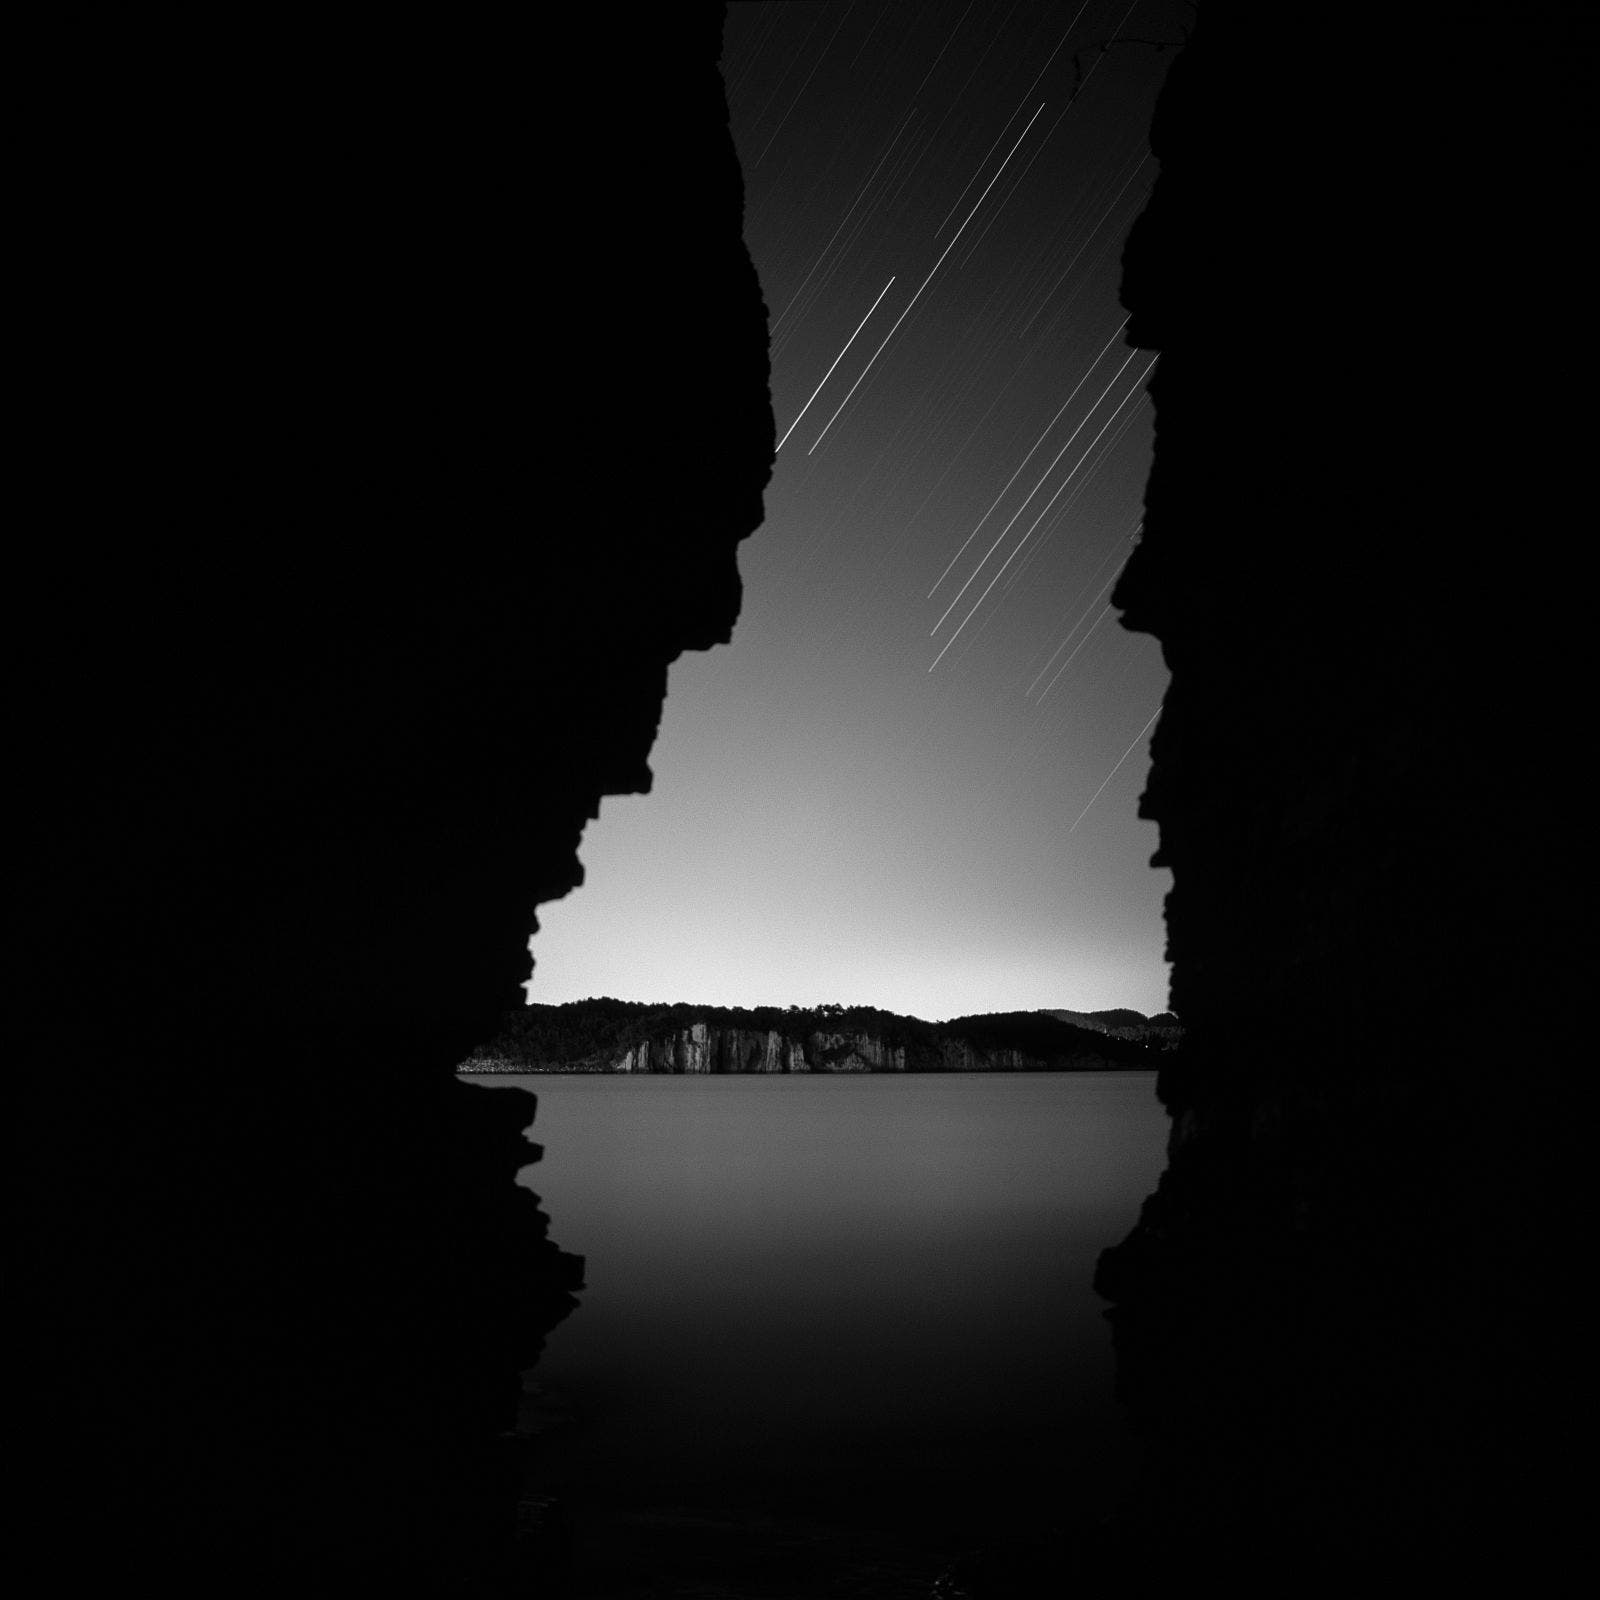 Jisoo Kang - Star Dust - 1st place in SPECIAL LONG EXPOSURE - 3